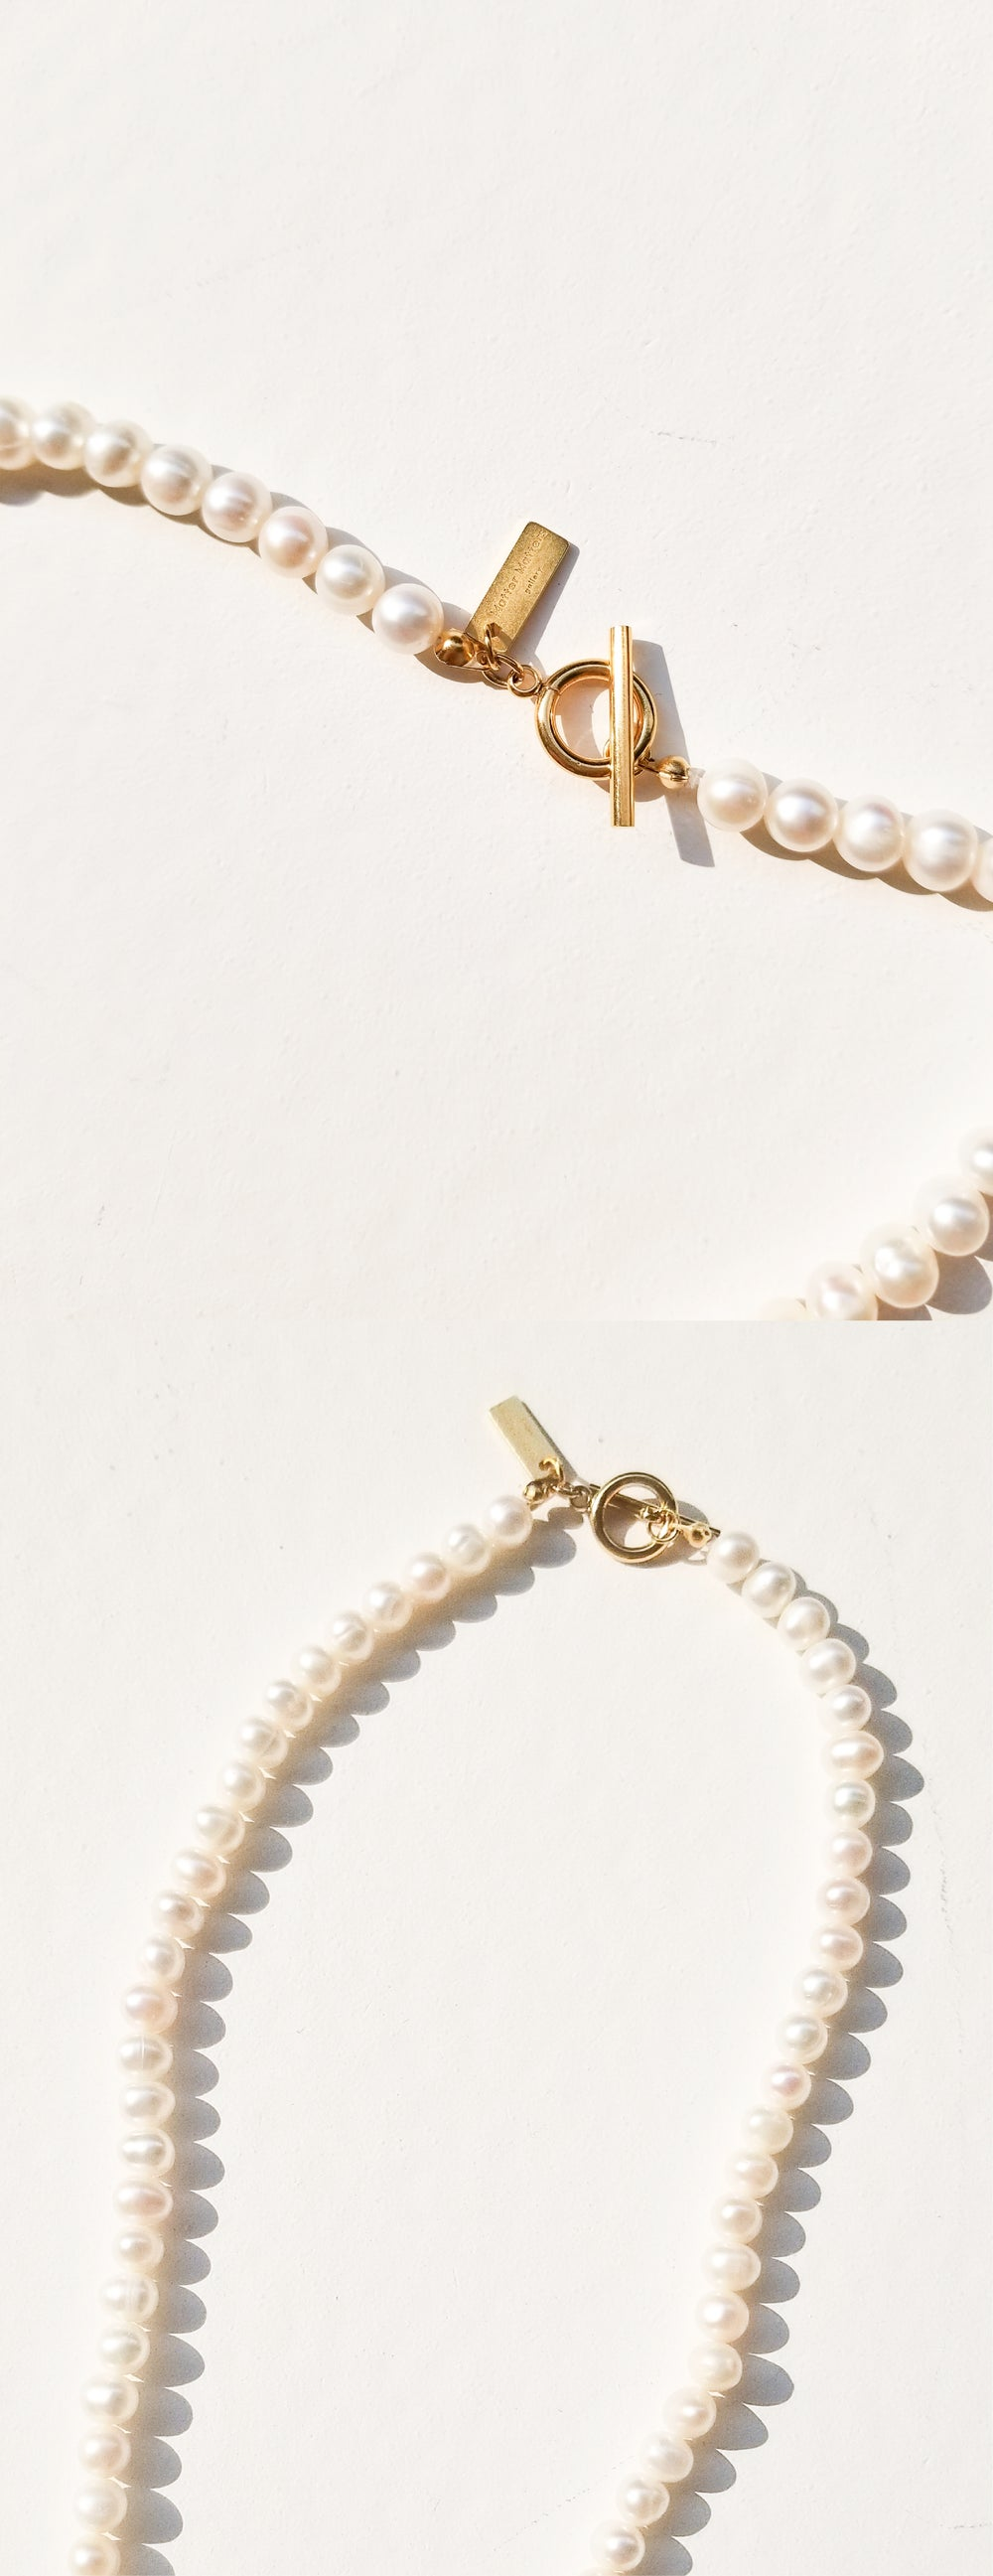 Chance pearl necklace •  Gold / Pearl